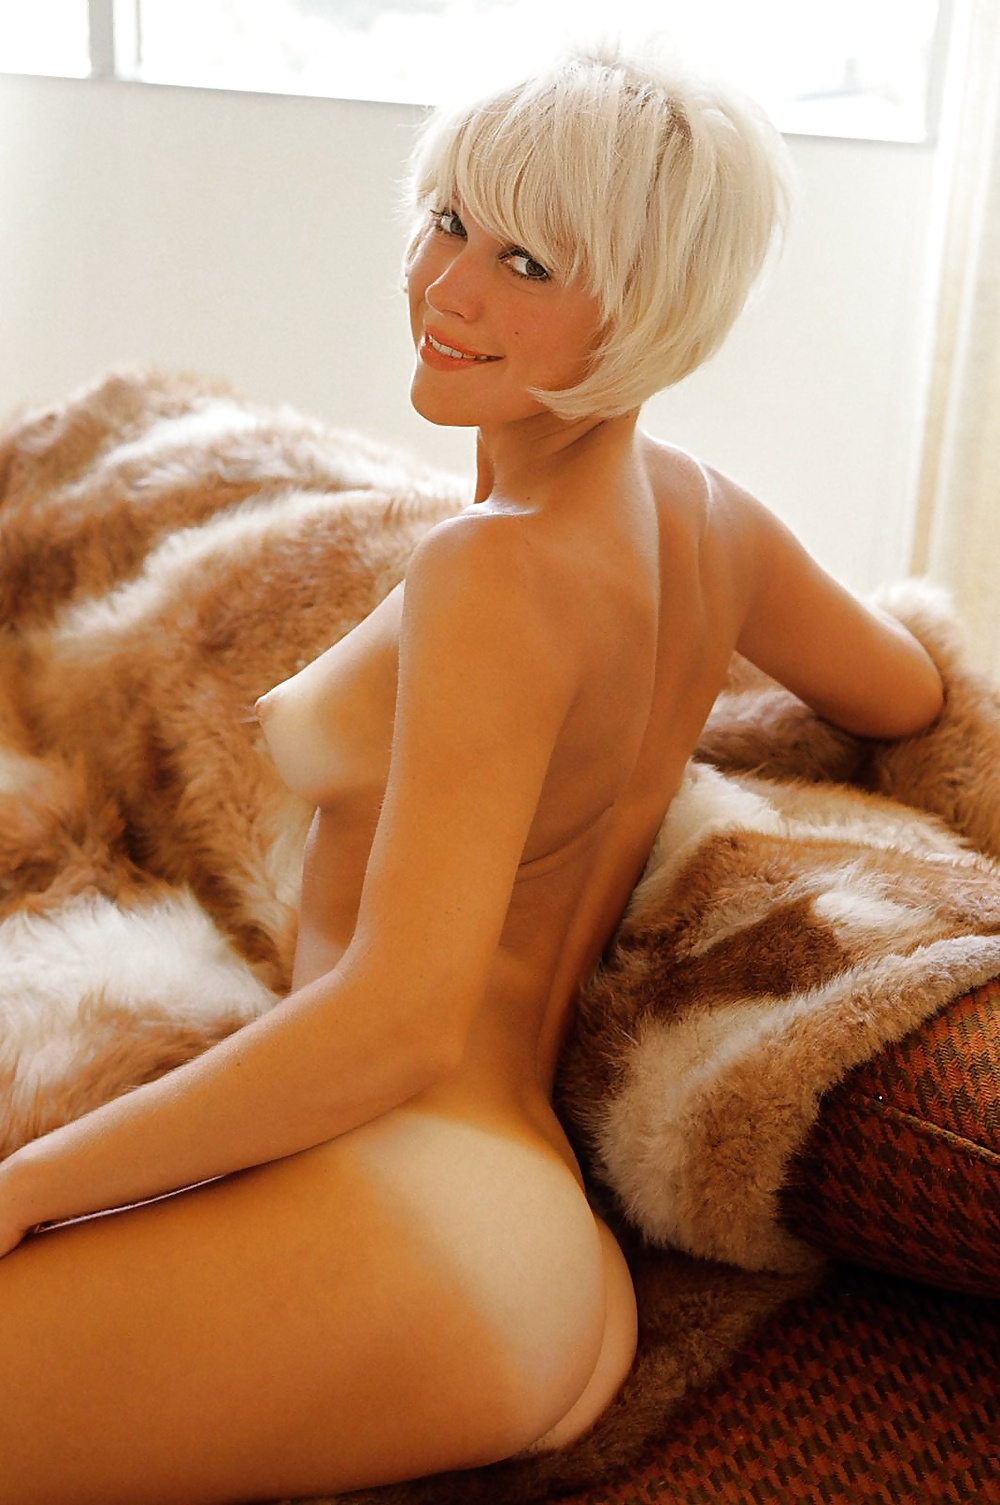 short-haired-blonde-beauties-naked